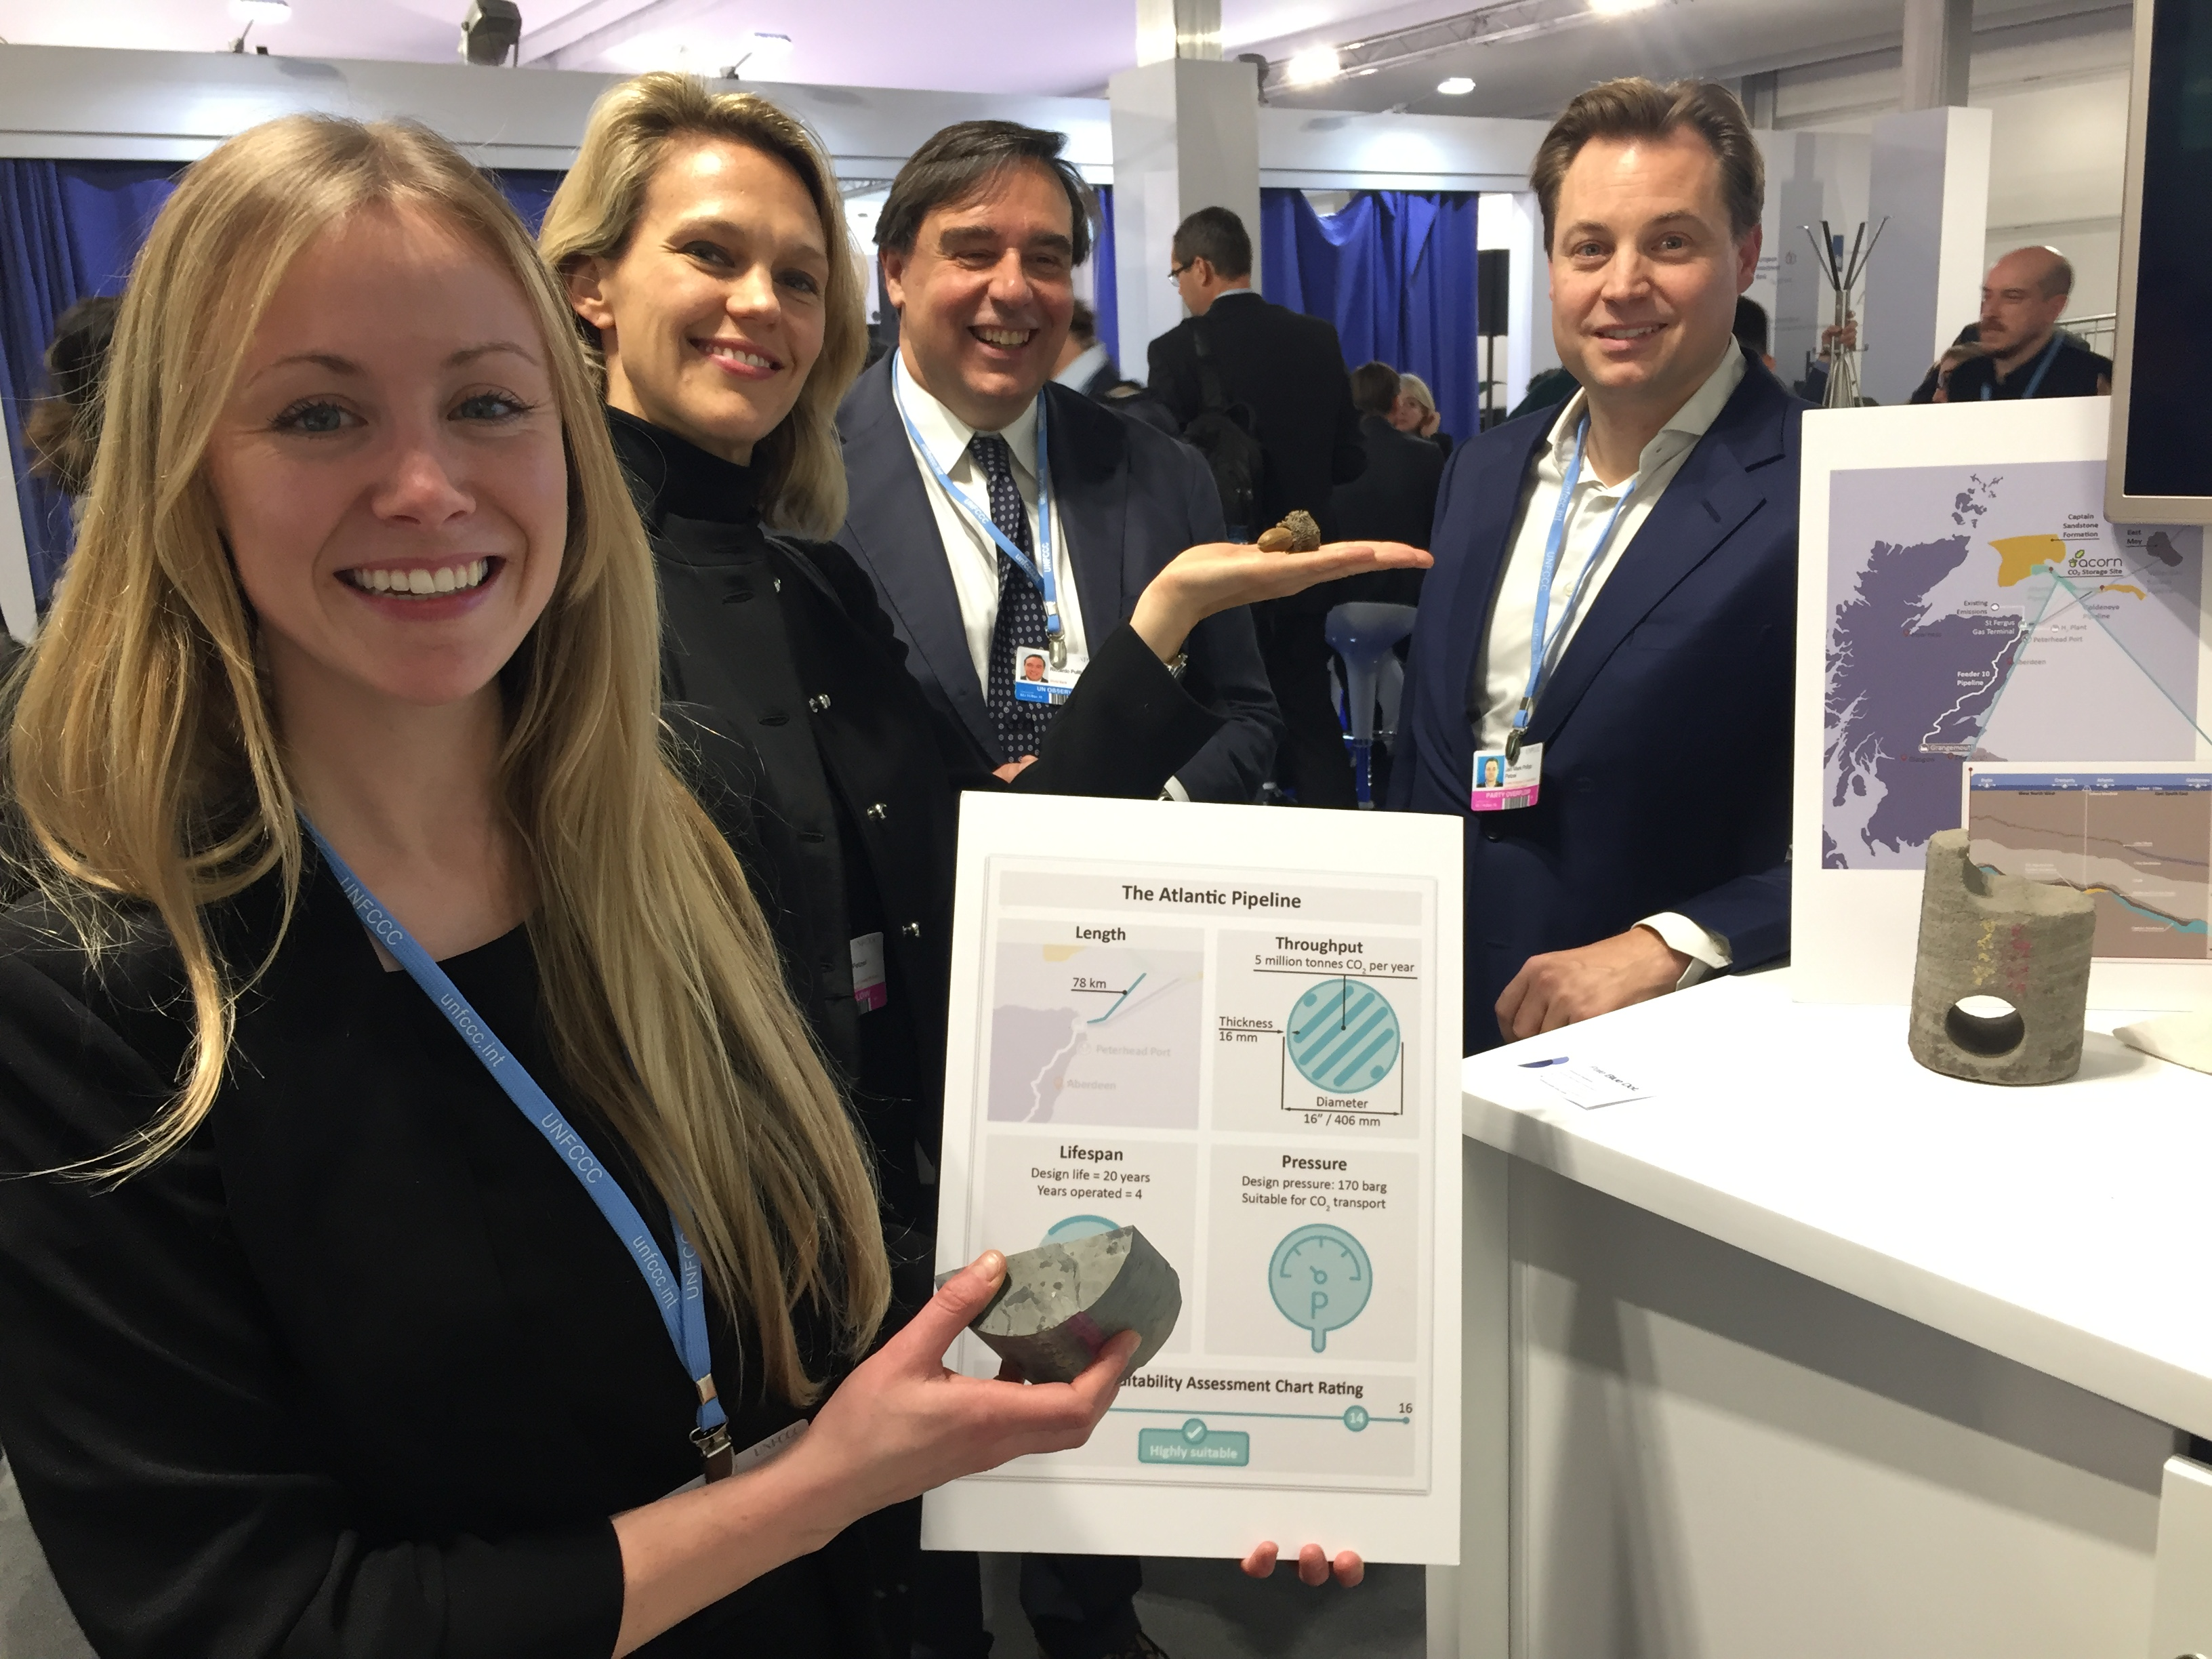 Hazel Robertson (left) of Pale Blue Dot discussing the Acorn CCS project with Kim Petzel of Carbon Clean Solutions (CCS) Riccardo Puliti from World Bank and Jan Petzel, CCS at COP24